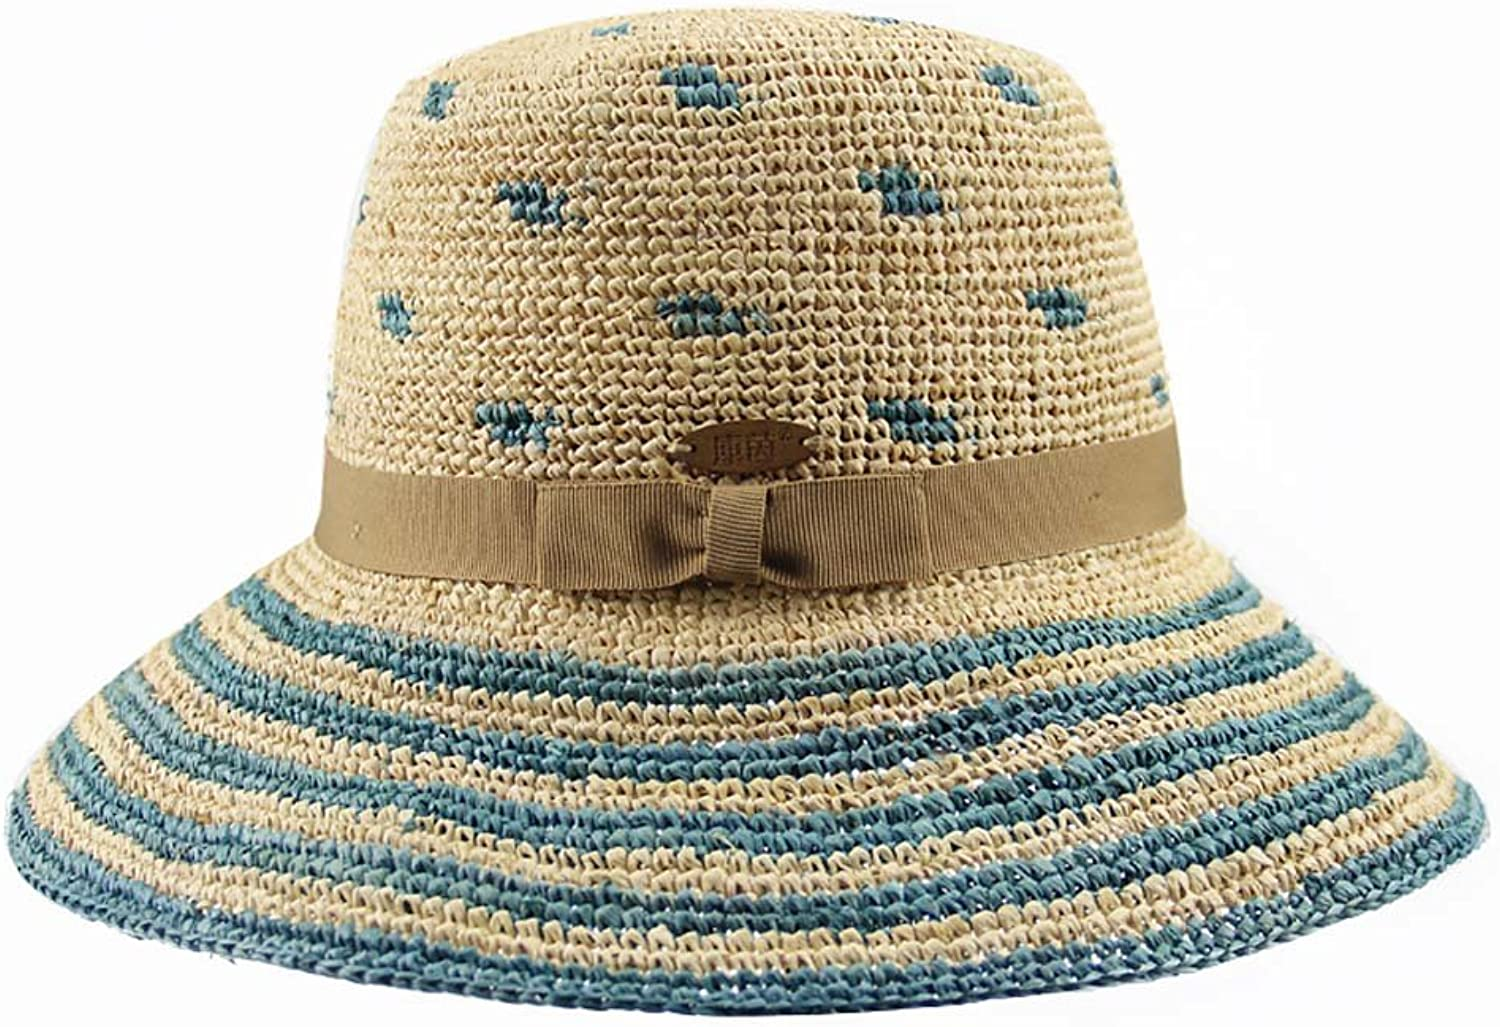 ZHANGRONG Spring and Summer Straw Hat Hand Handshake Puzzles Ladies Hoods Foldable Beach Hat (color Optional) (color   3)